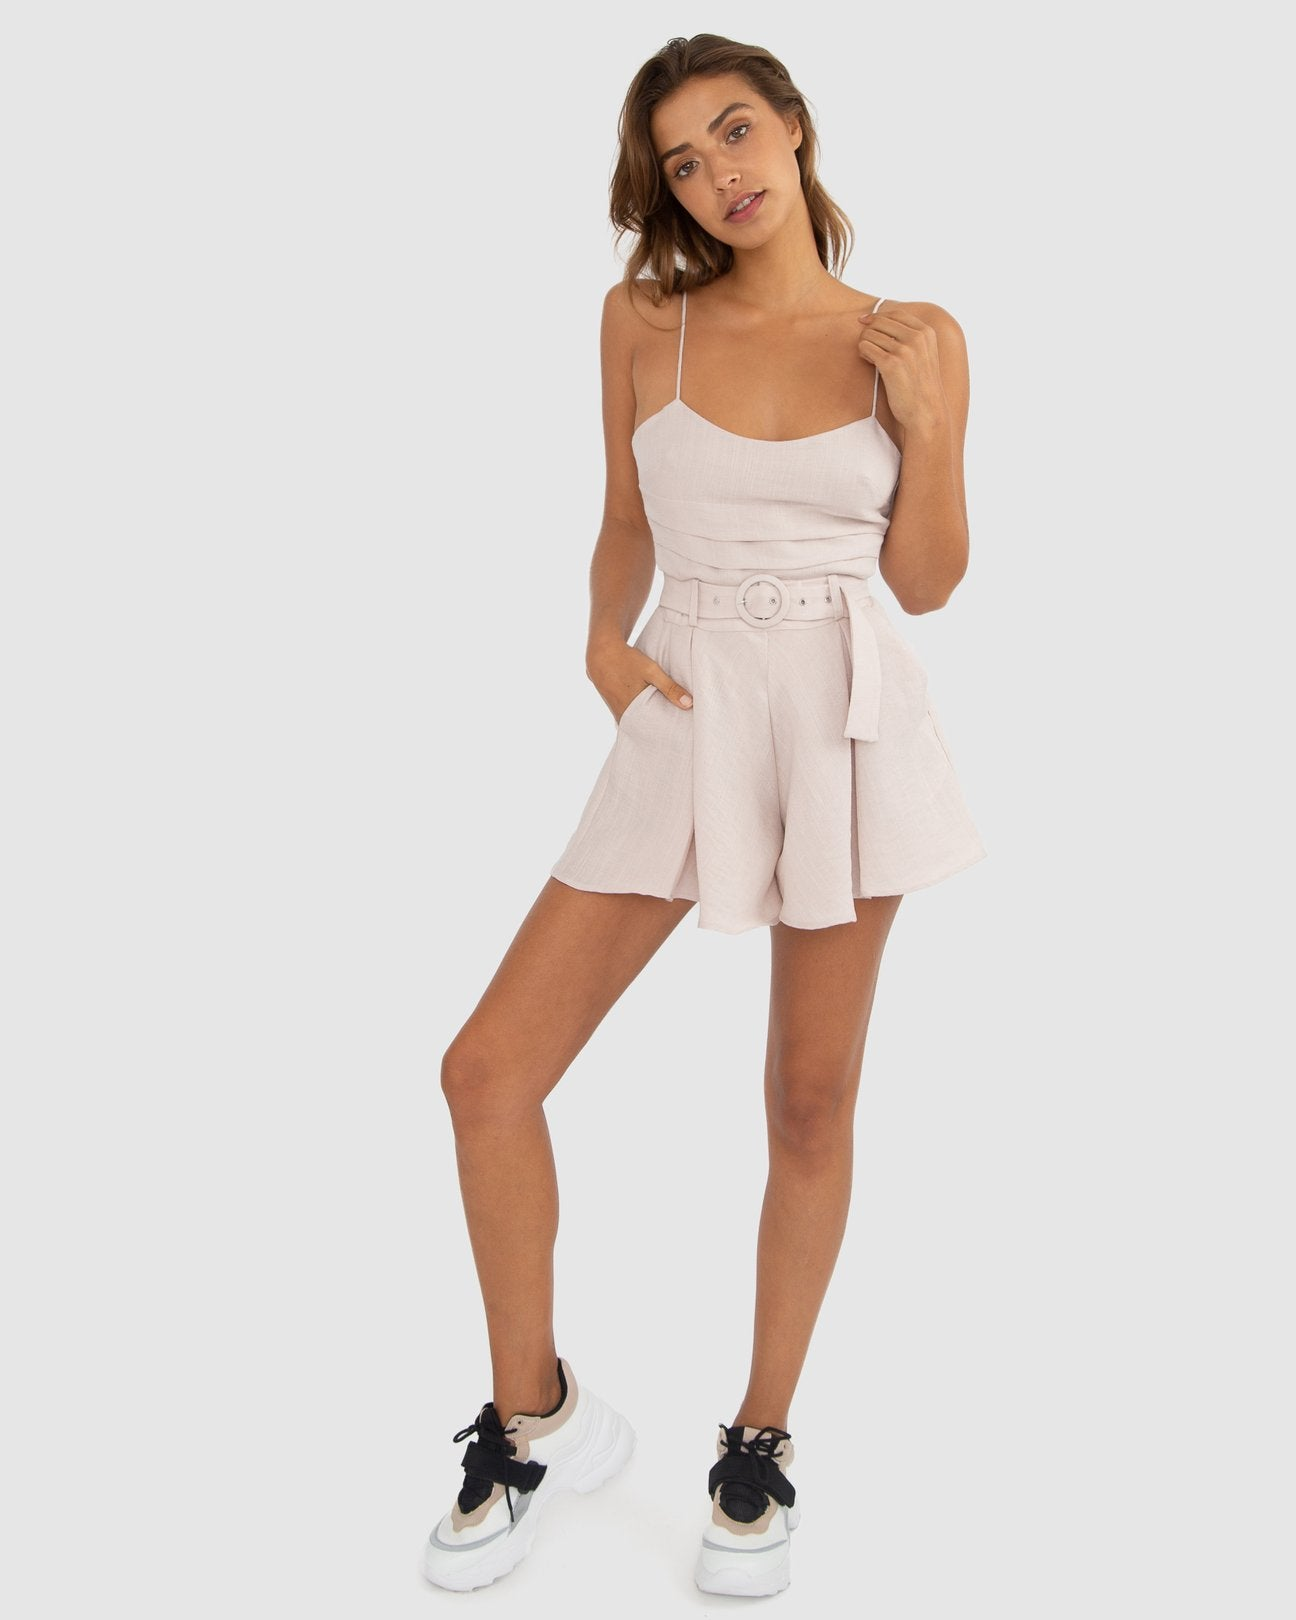 Amoureaux Playsuit